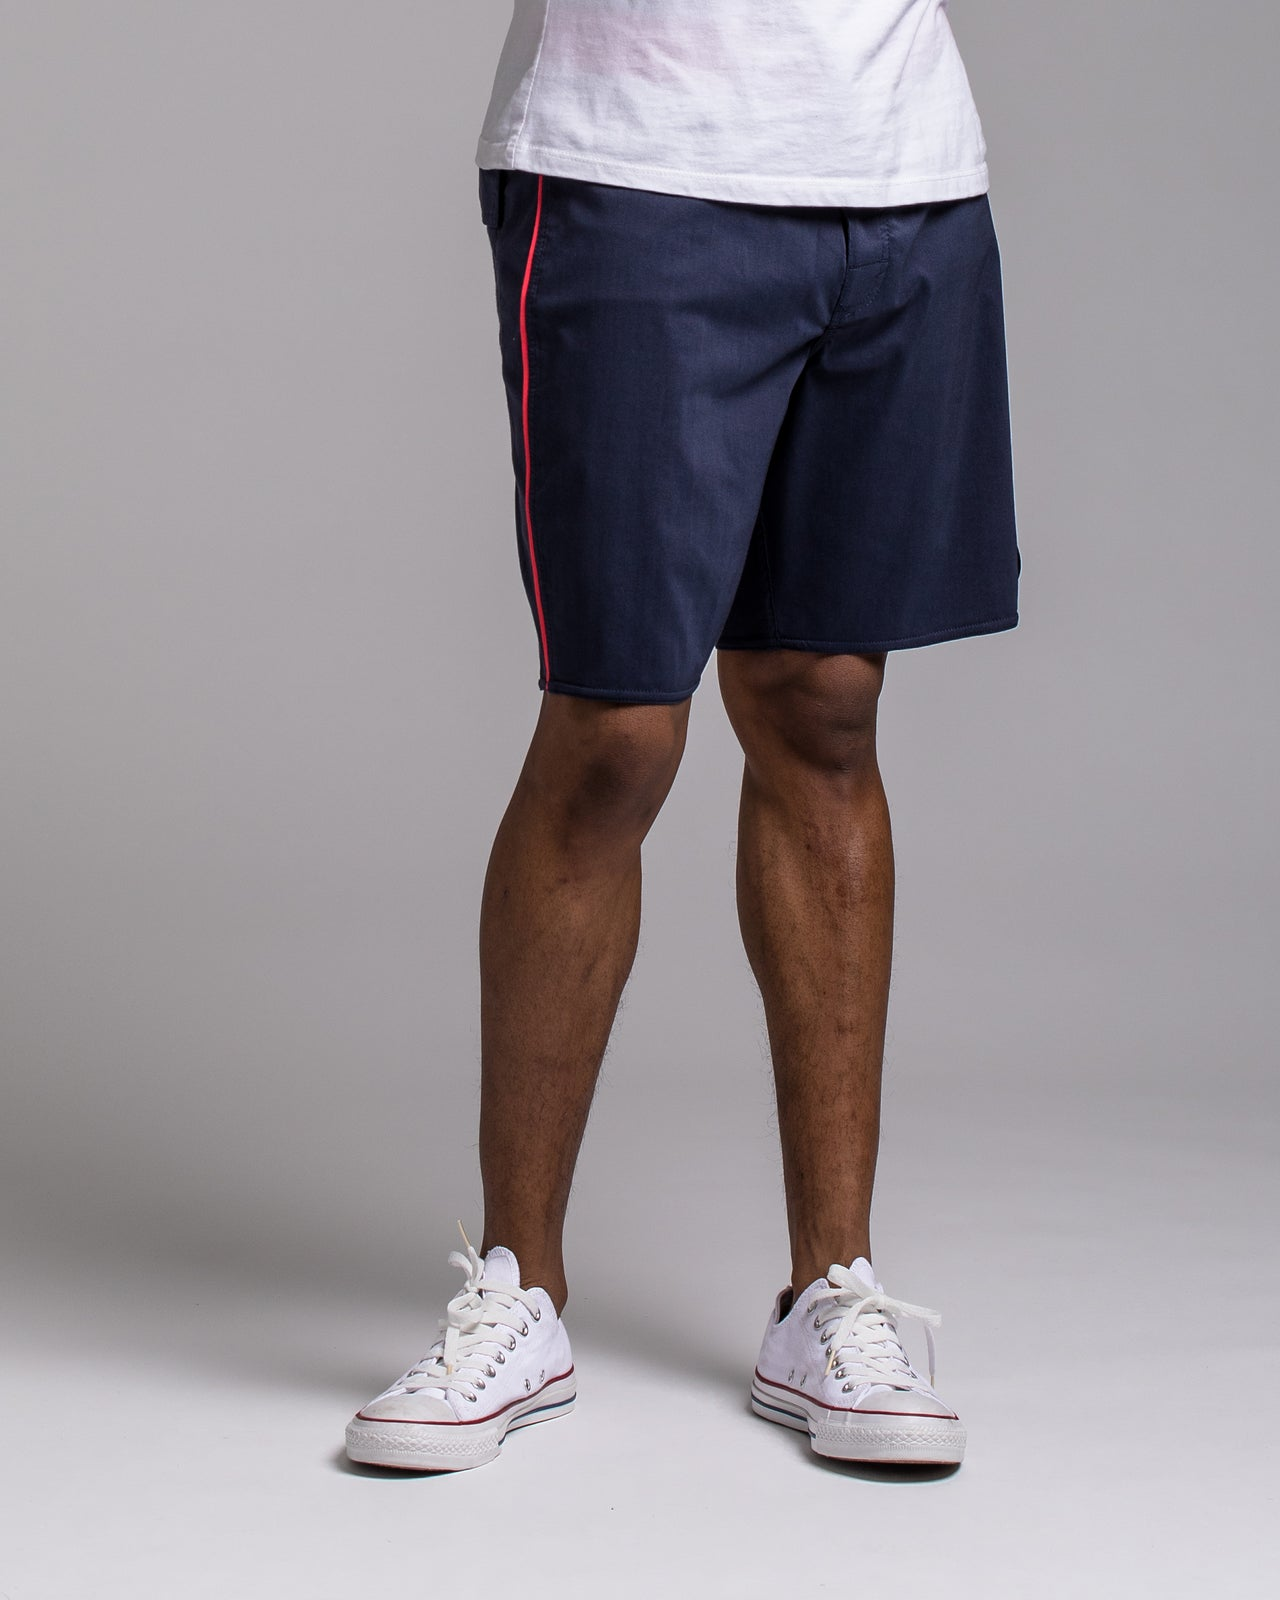 Smooth Like RVCA Trunk - Color: Washed Navy/Red | Blue